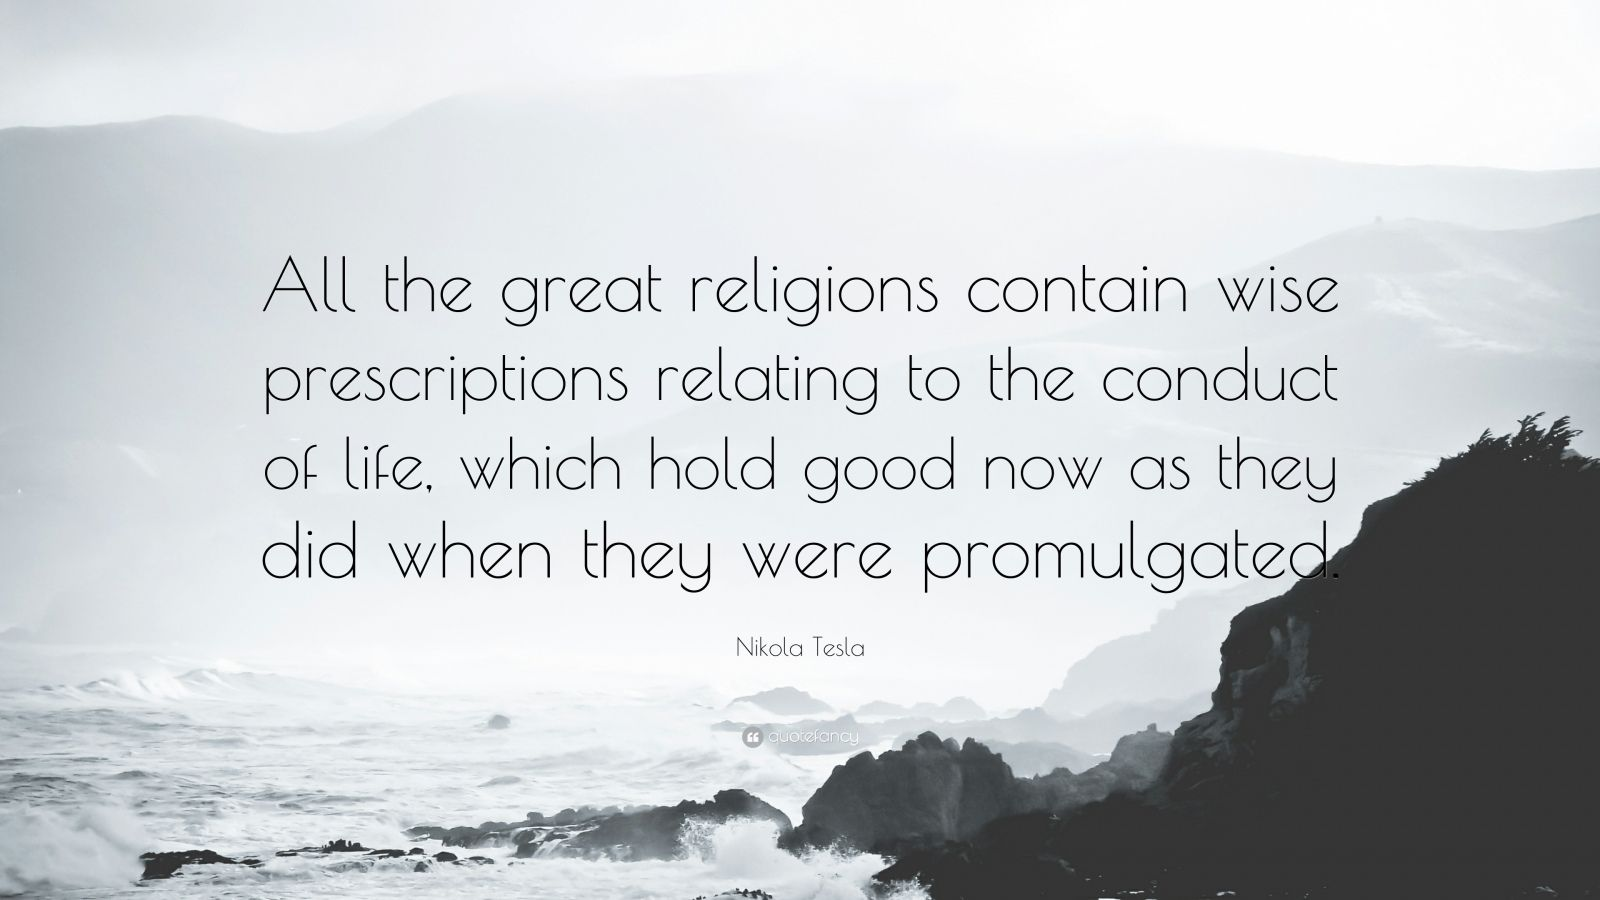 """Nikola Tesla Quote: """"All the great religions contain wise prescriptions relating to the conduct of life, which hold good now as they did when they were promulgated."""""""